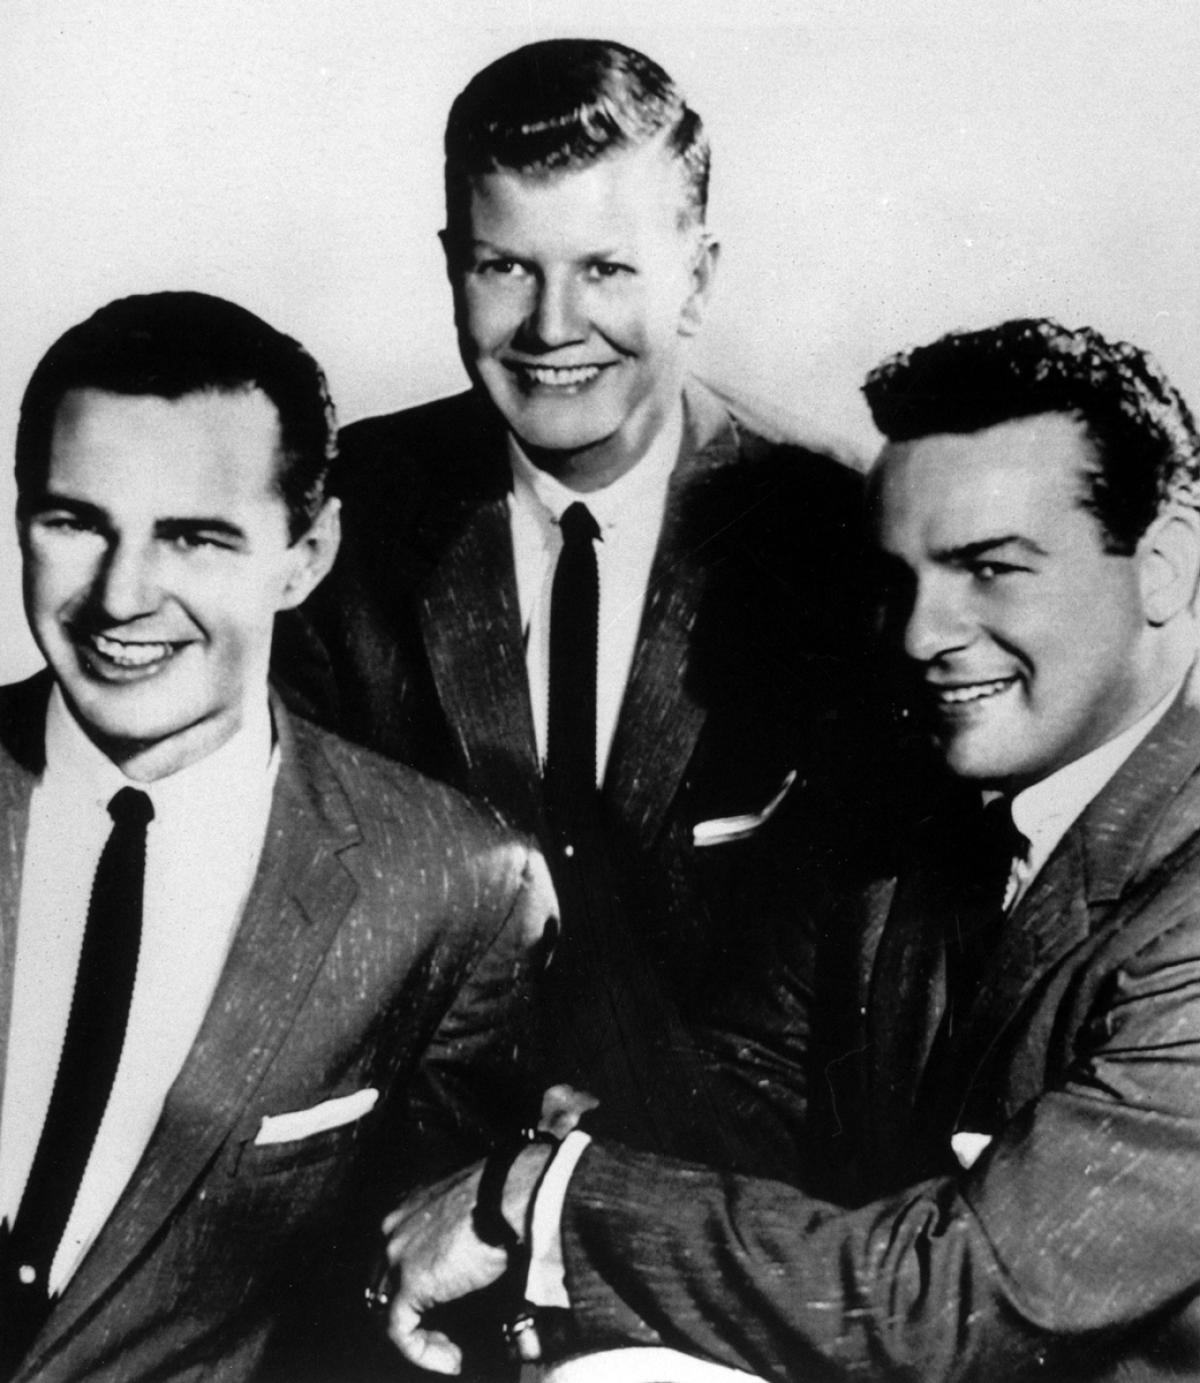 The Billy Tipton Trio, Tipton pictured center.